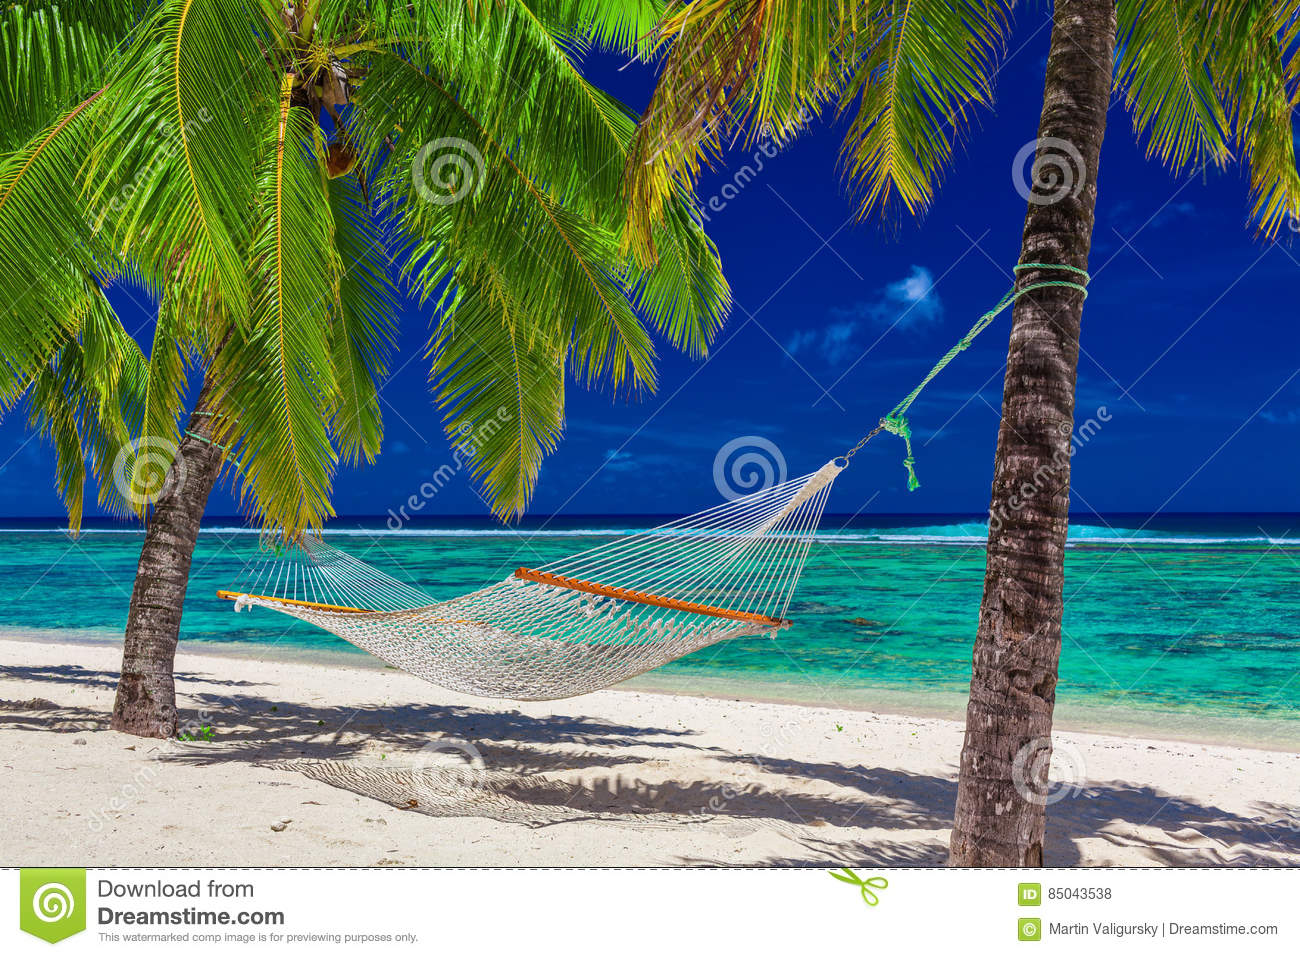 Hammock between palm trees on tropical beach of Rarotonga, Cook